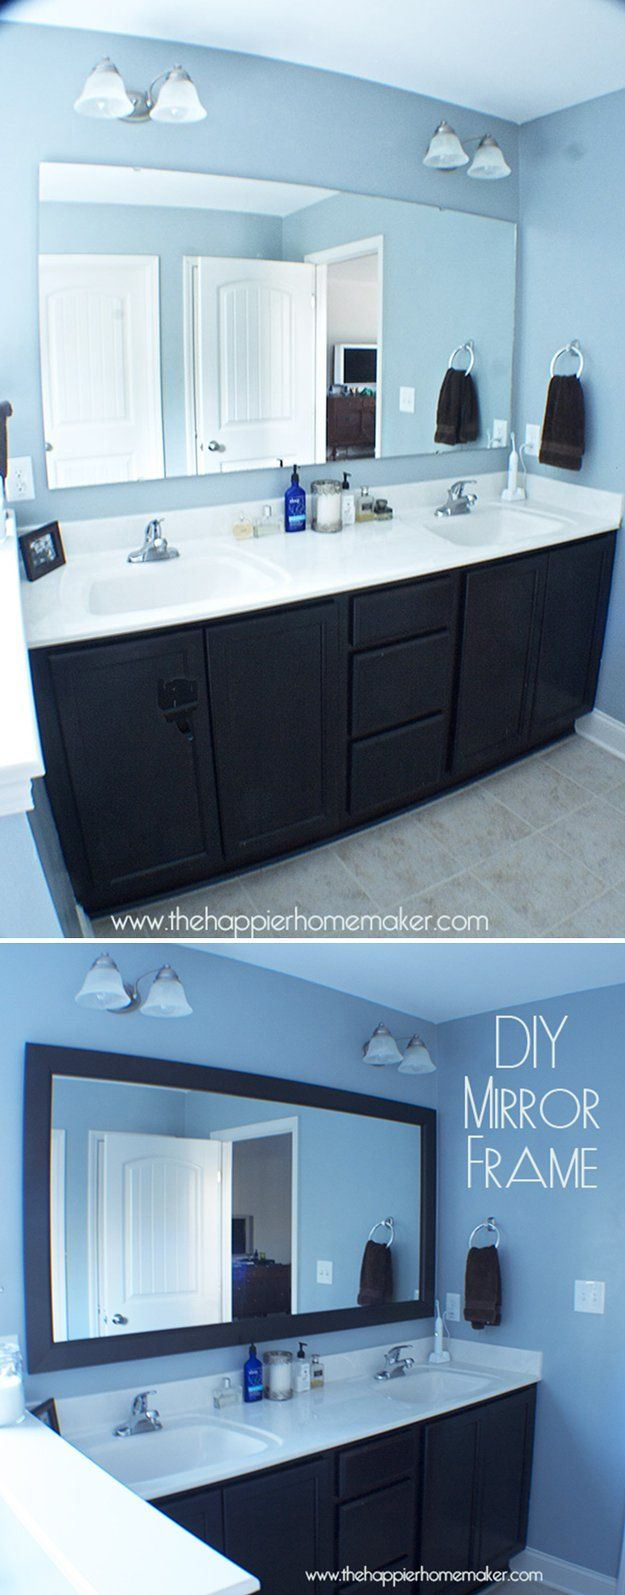 Bathroom Decor With Mirror Frames By Diy Ready At Http Diyready Com